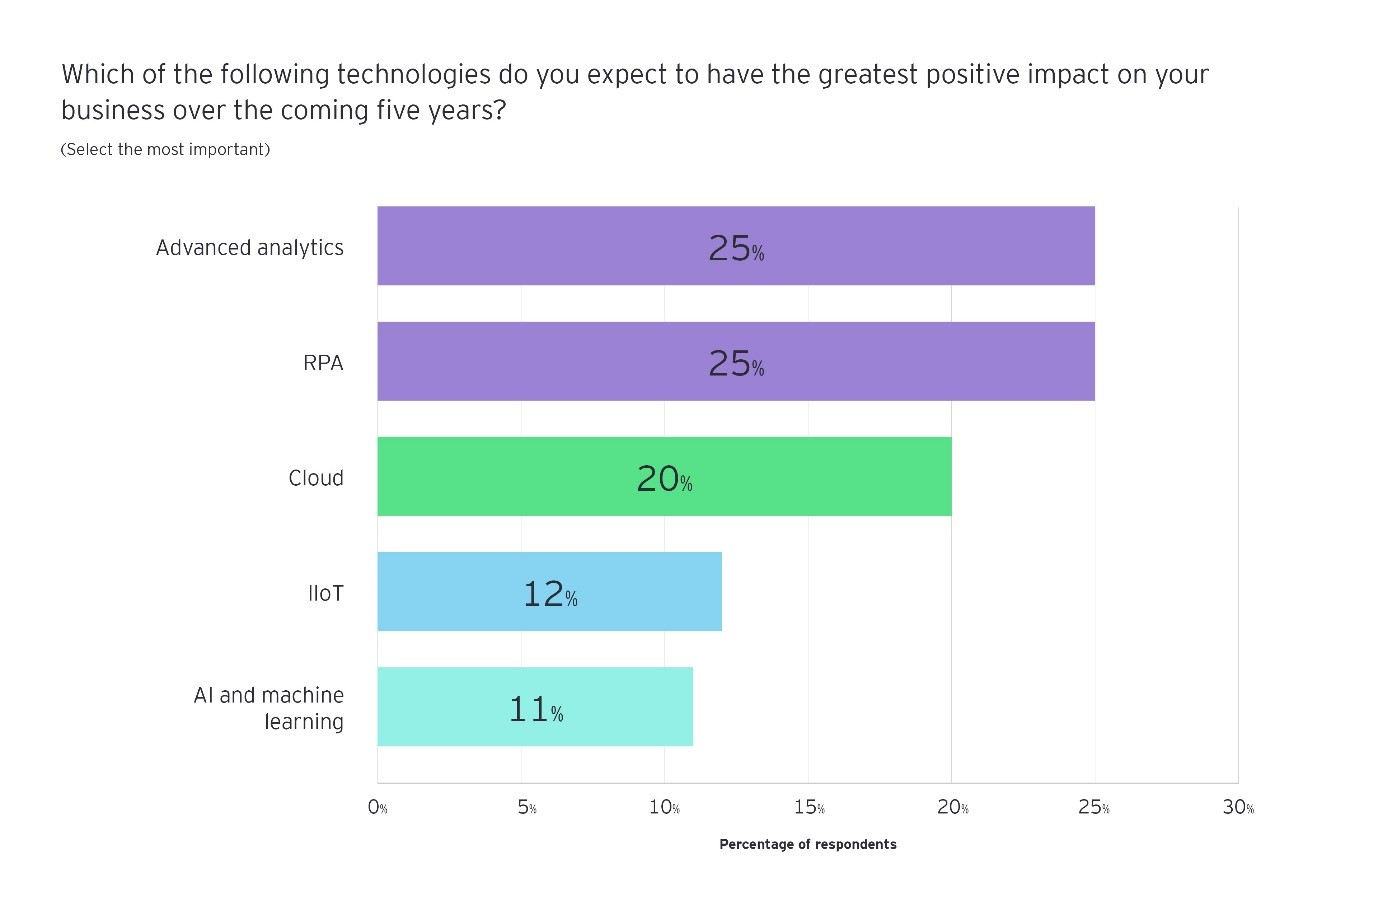 which of the following technologies do you expect to have the greatest positive impact on your business over the coming five years